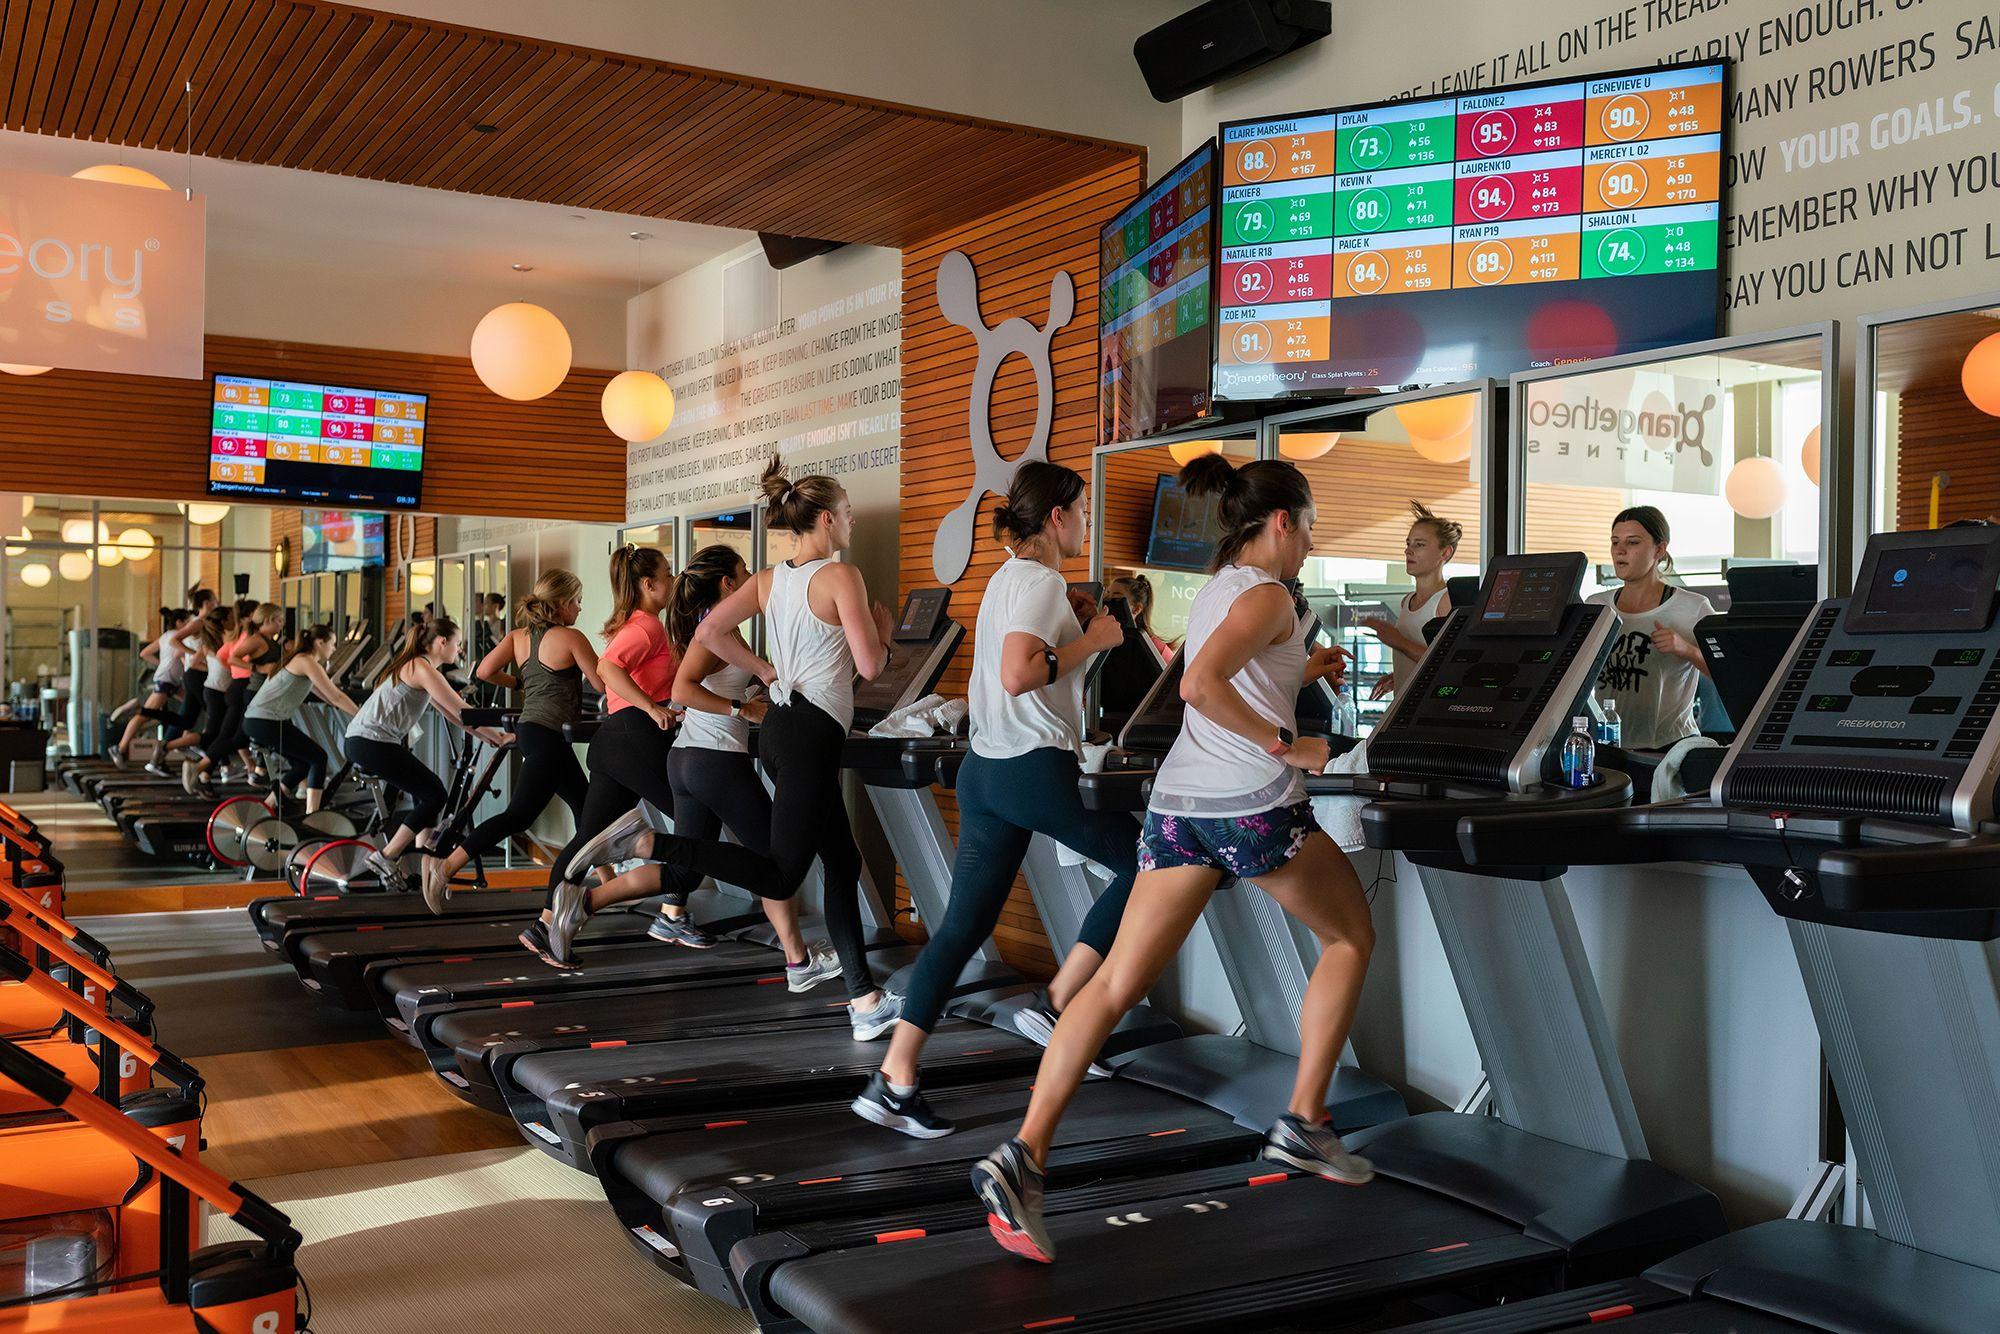 What Is Orangetheory And Why Are People SO Obsessed With It?